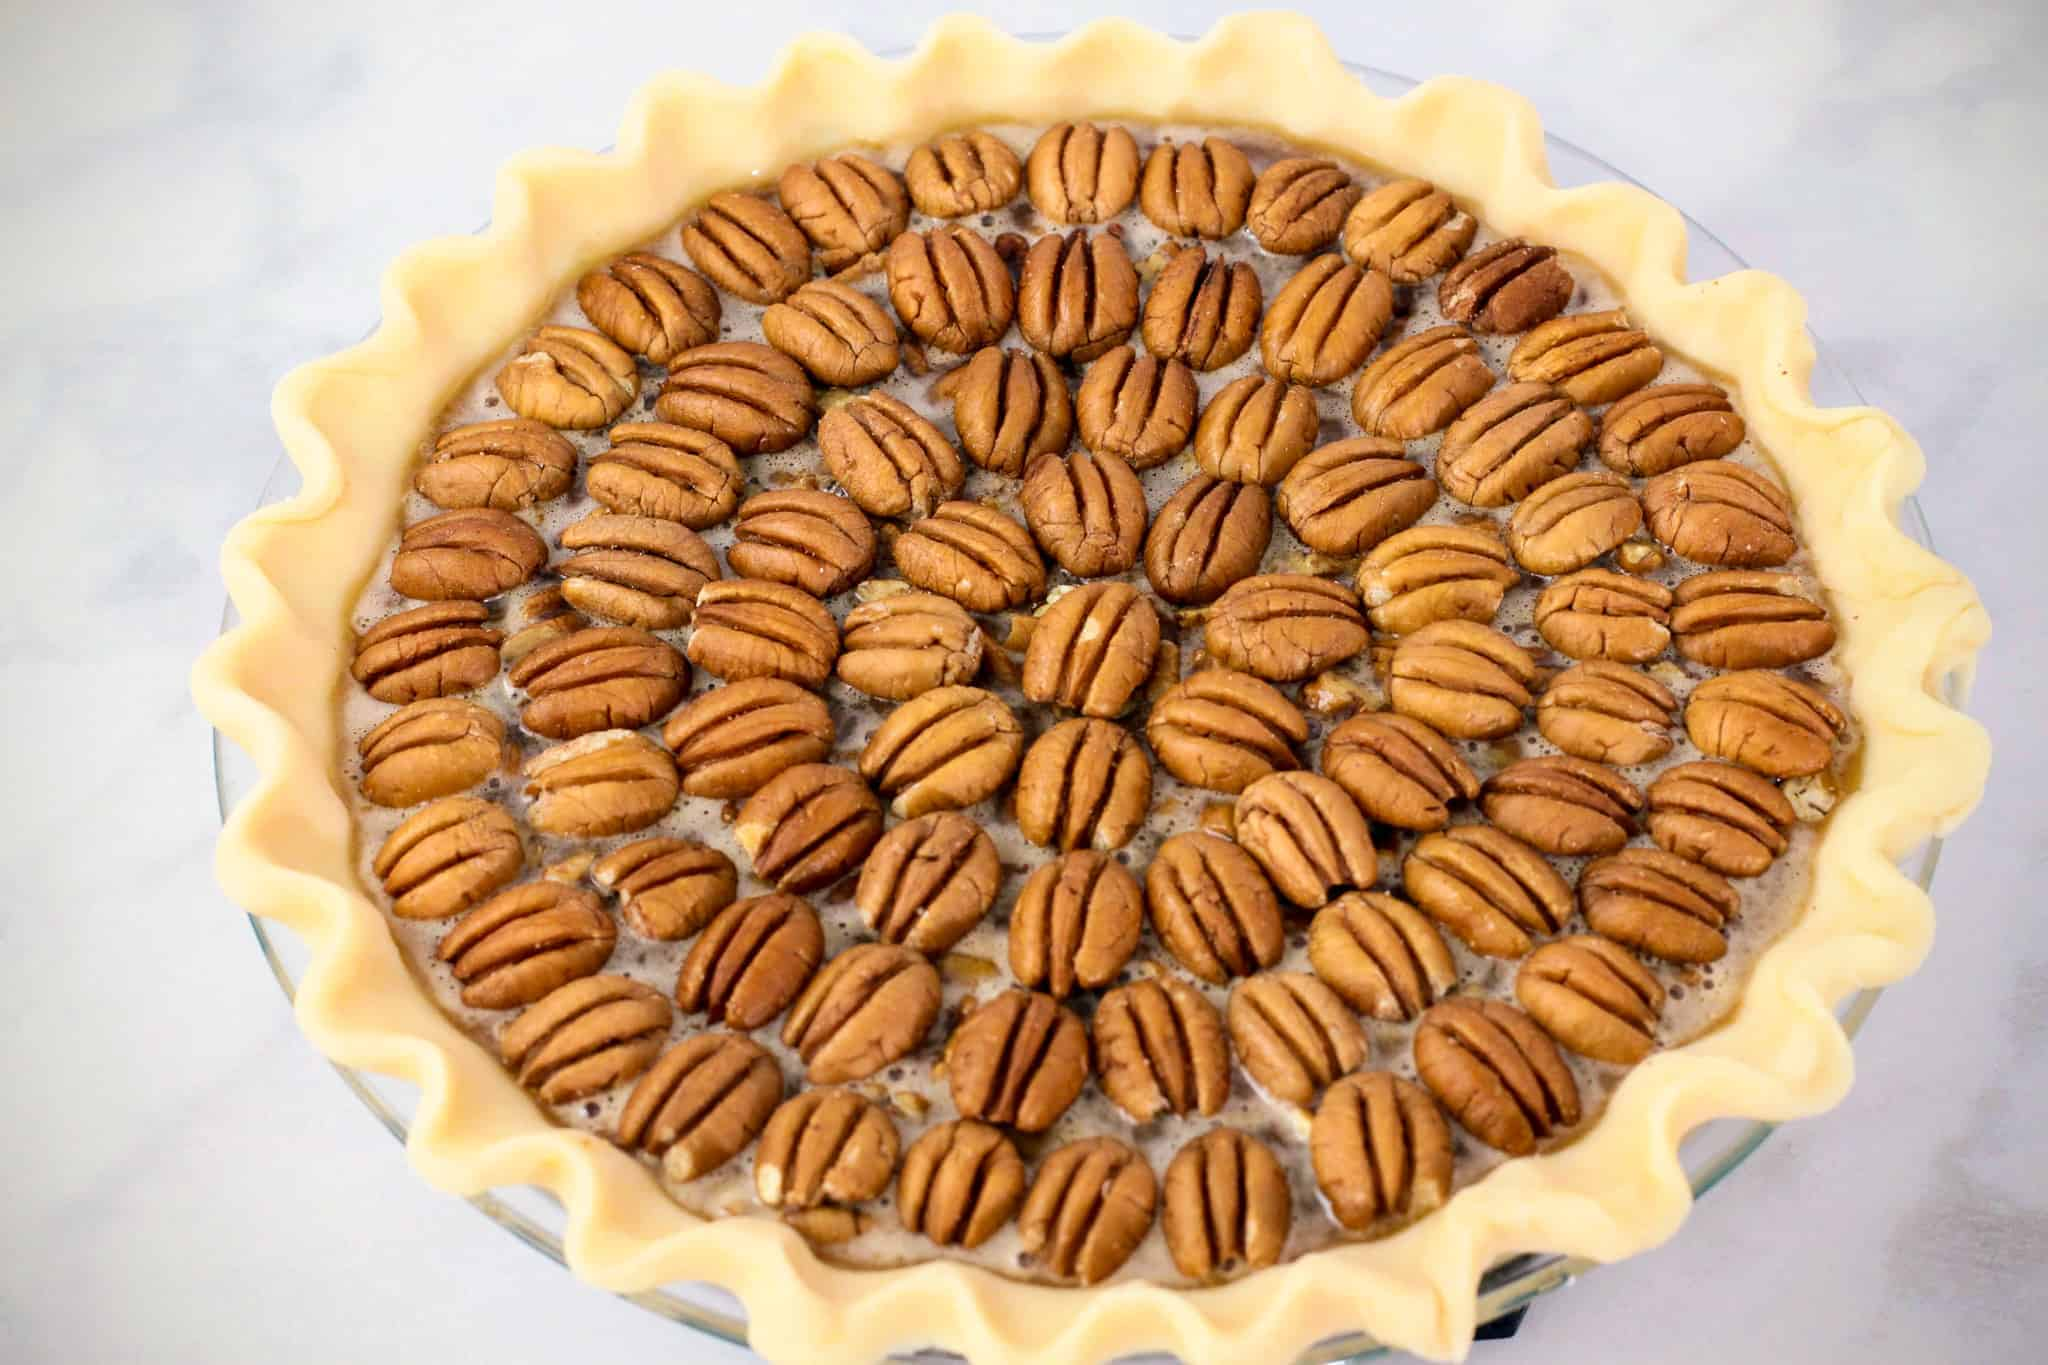 Side angle view of a prepared pecan pie with the pecan topping arranged in a concentric circle pattern.